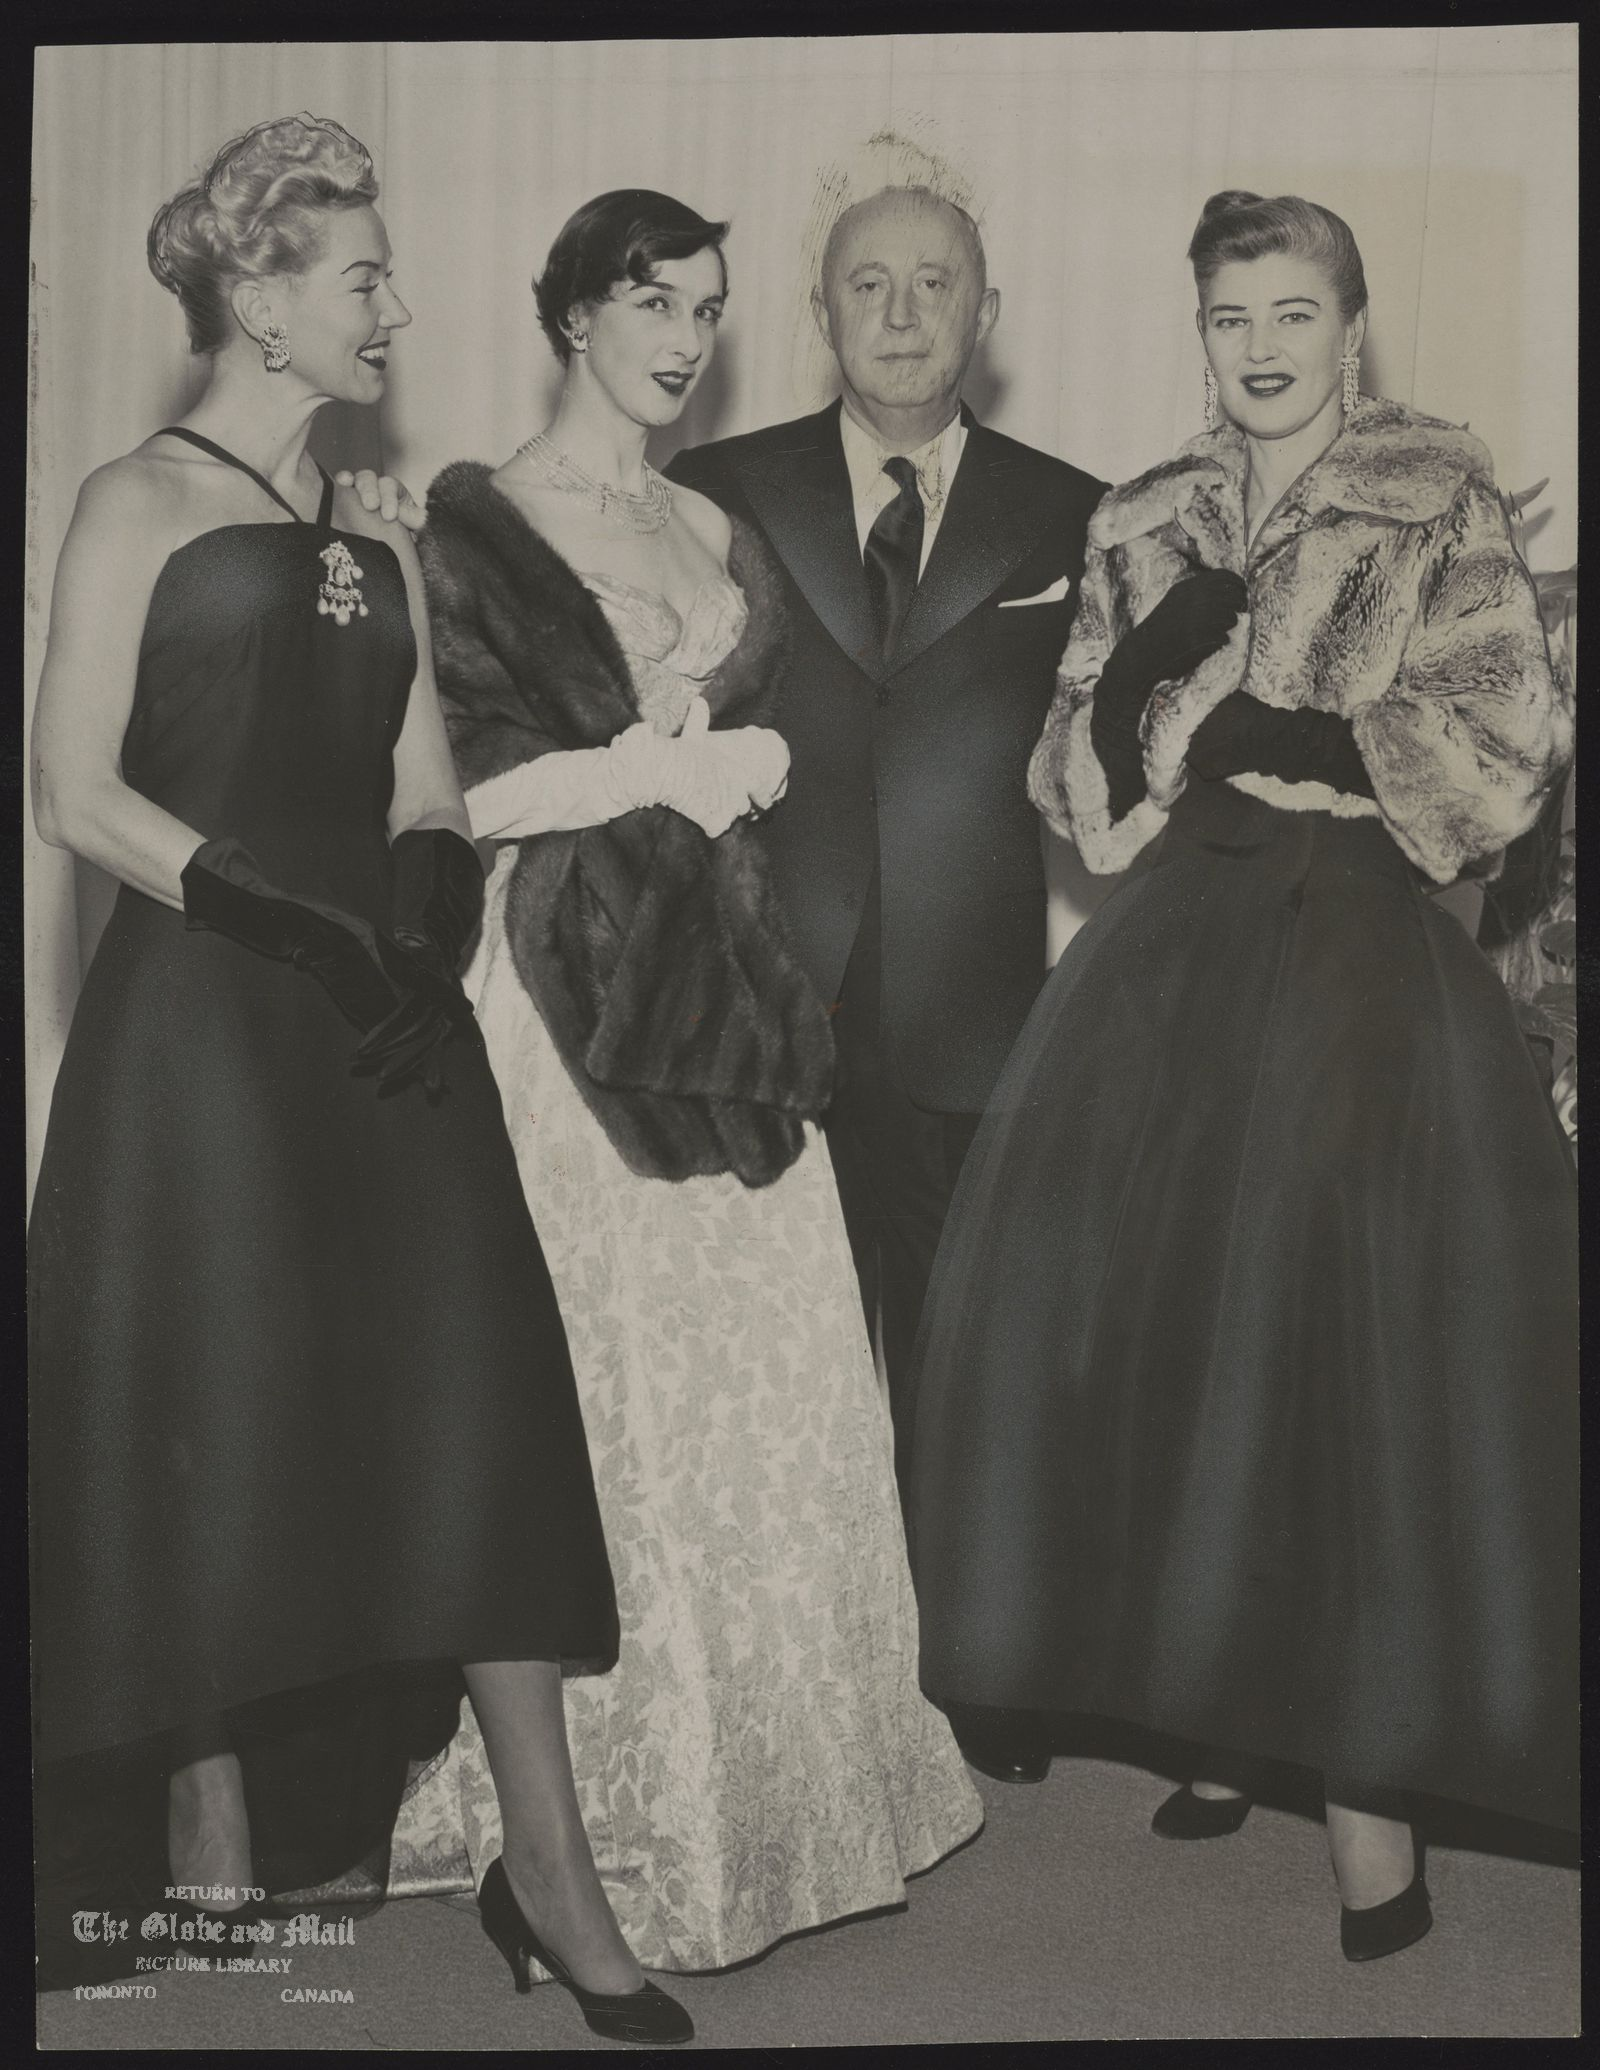 Christian Dior poses with three of his models at Holt Renfrew's on Bloor St. Left to right, Mabel Glenby, New York; Jeanne Gora, Paris; and, on the other side of Mr. Dior, Mary Ryan, New York. They flew here especially to model in yesterday's showings.